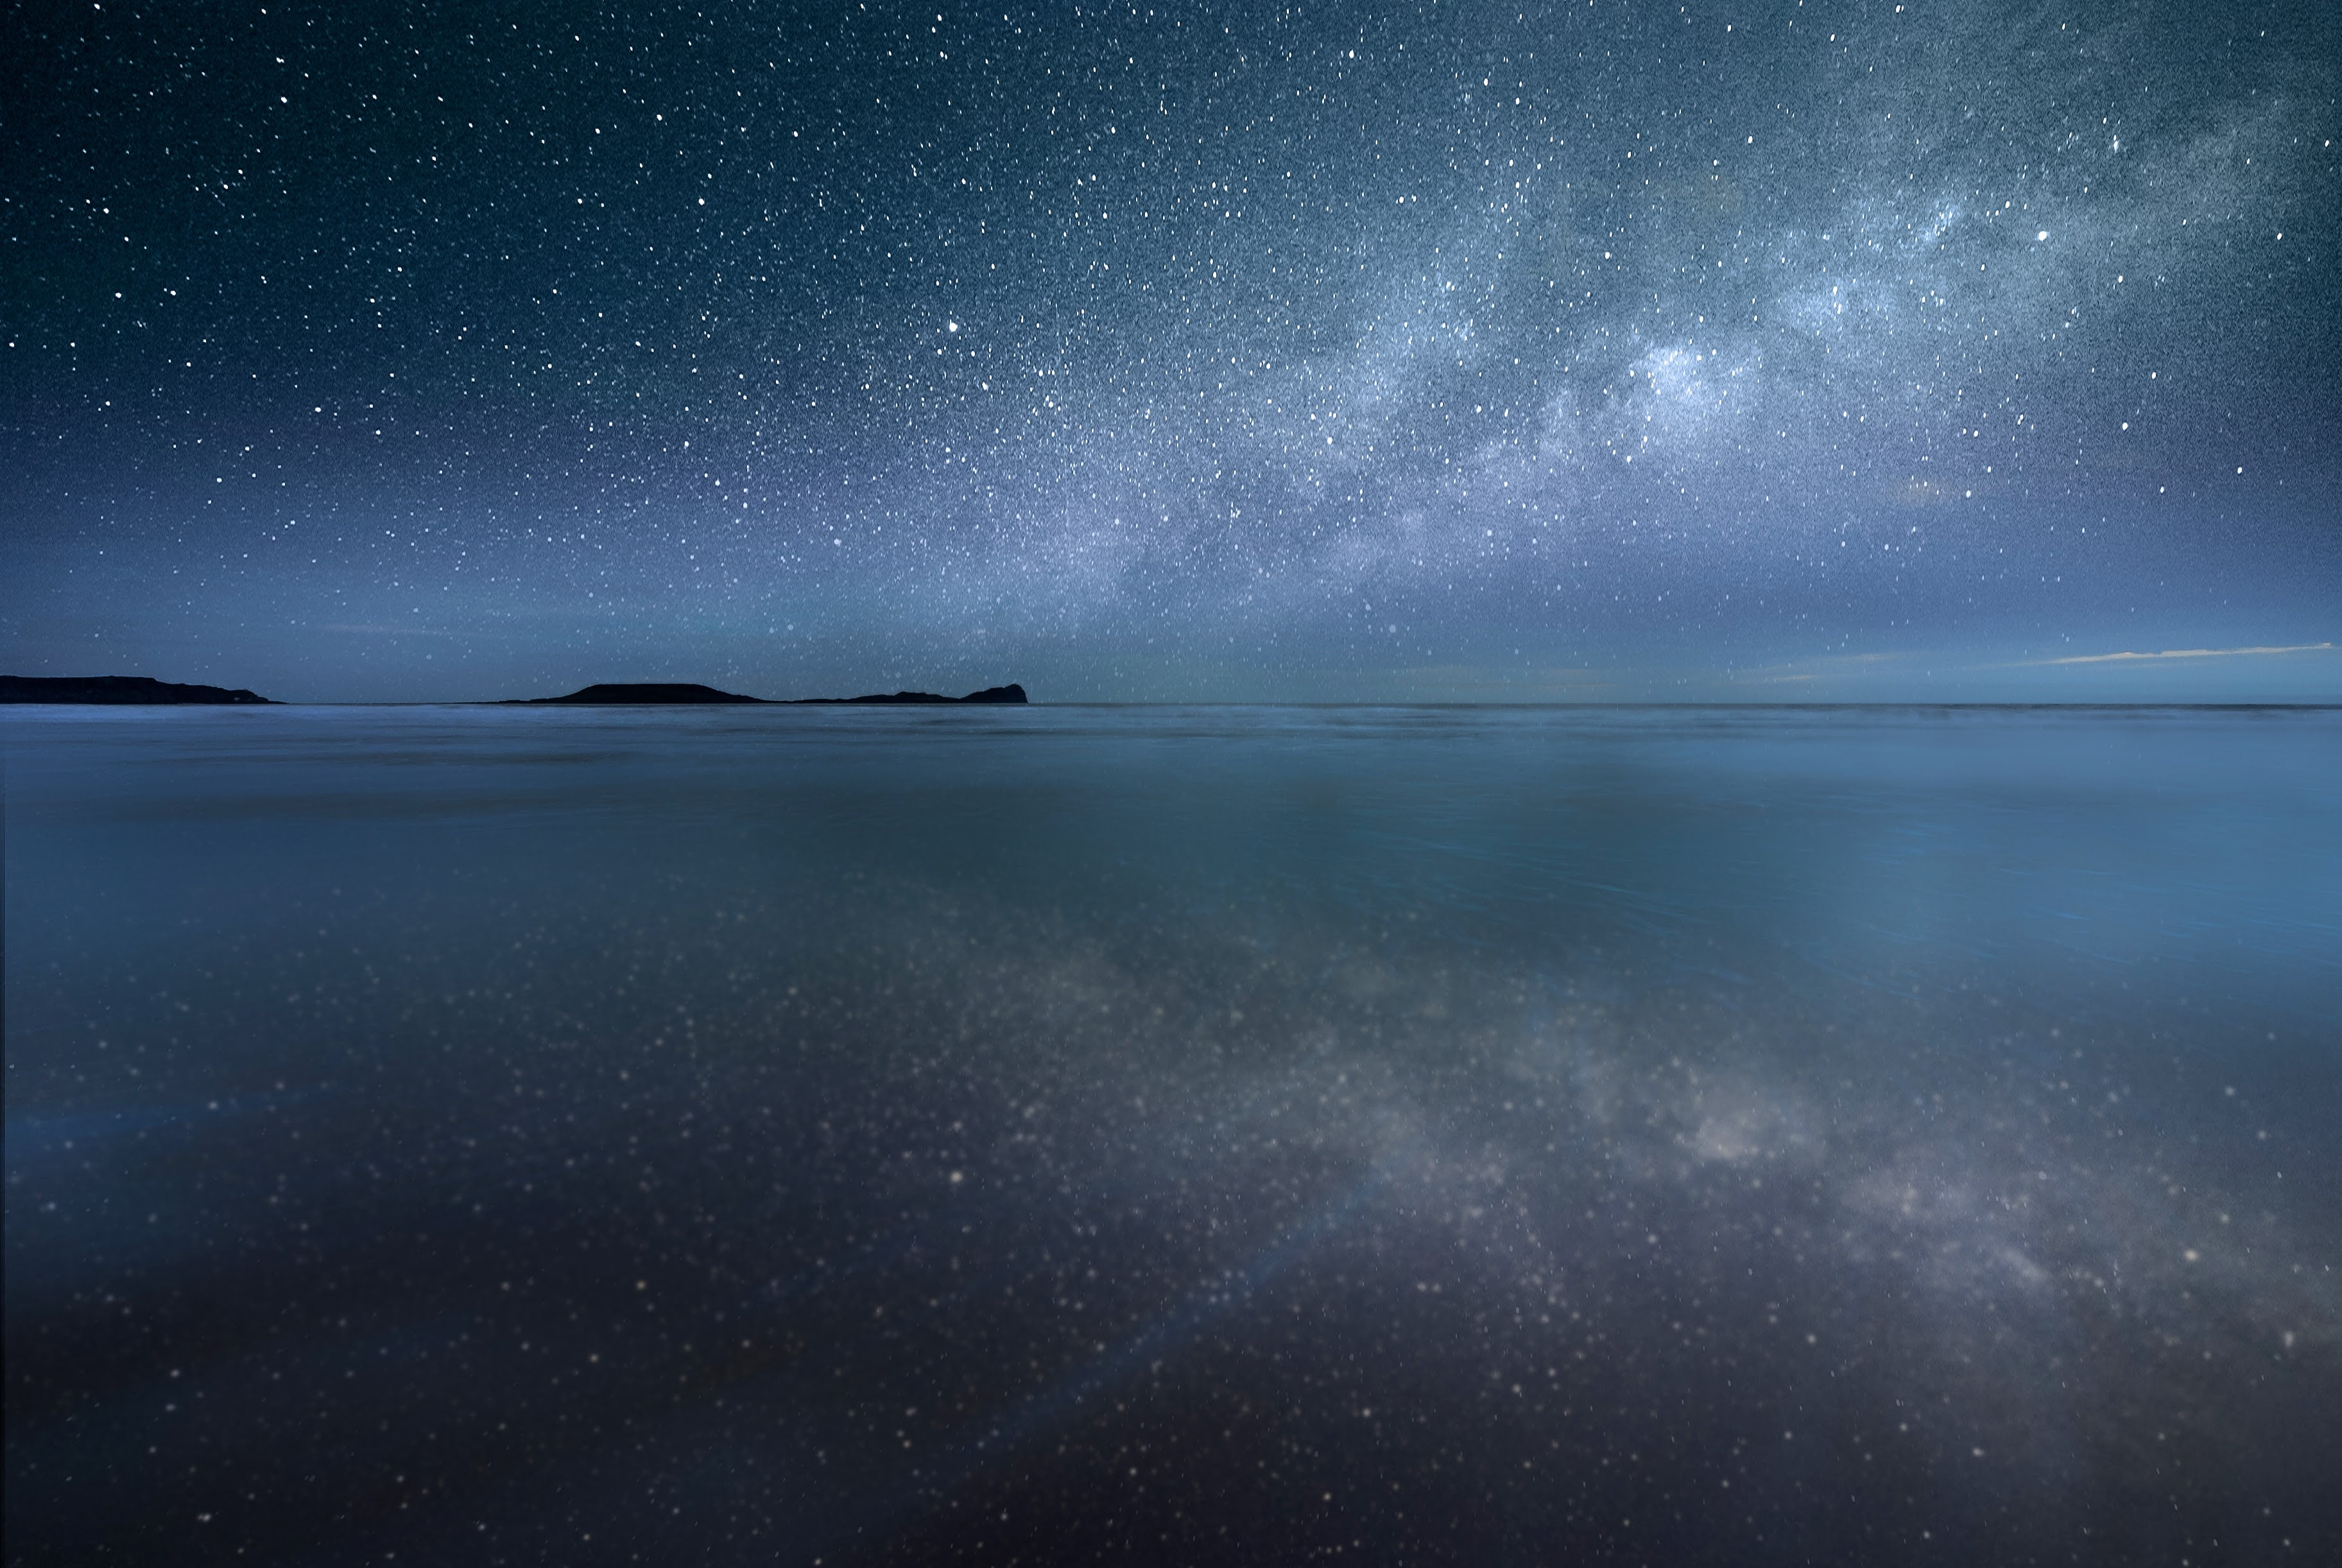 Milky Way Photography on the Gower Peninsula